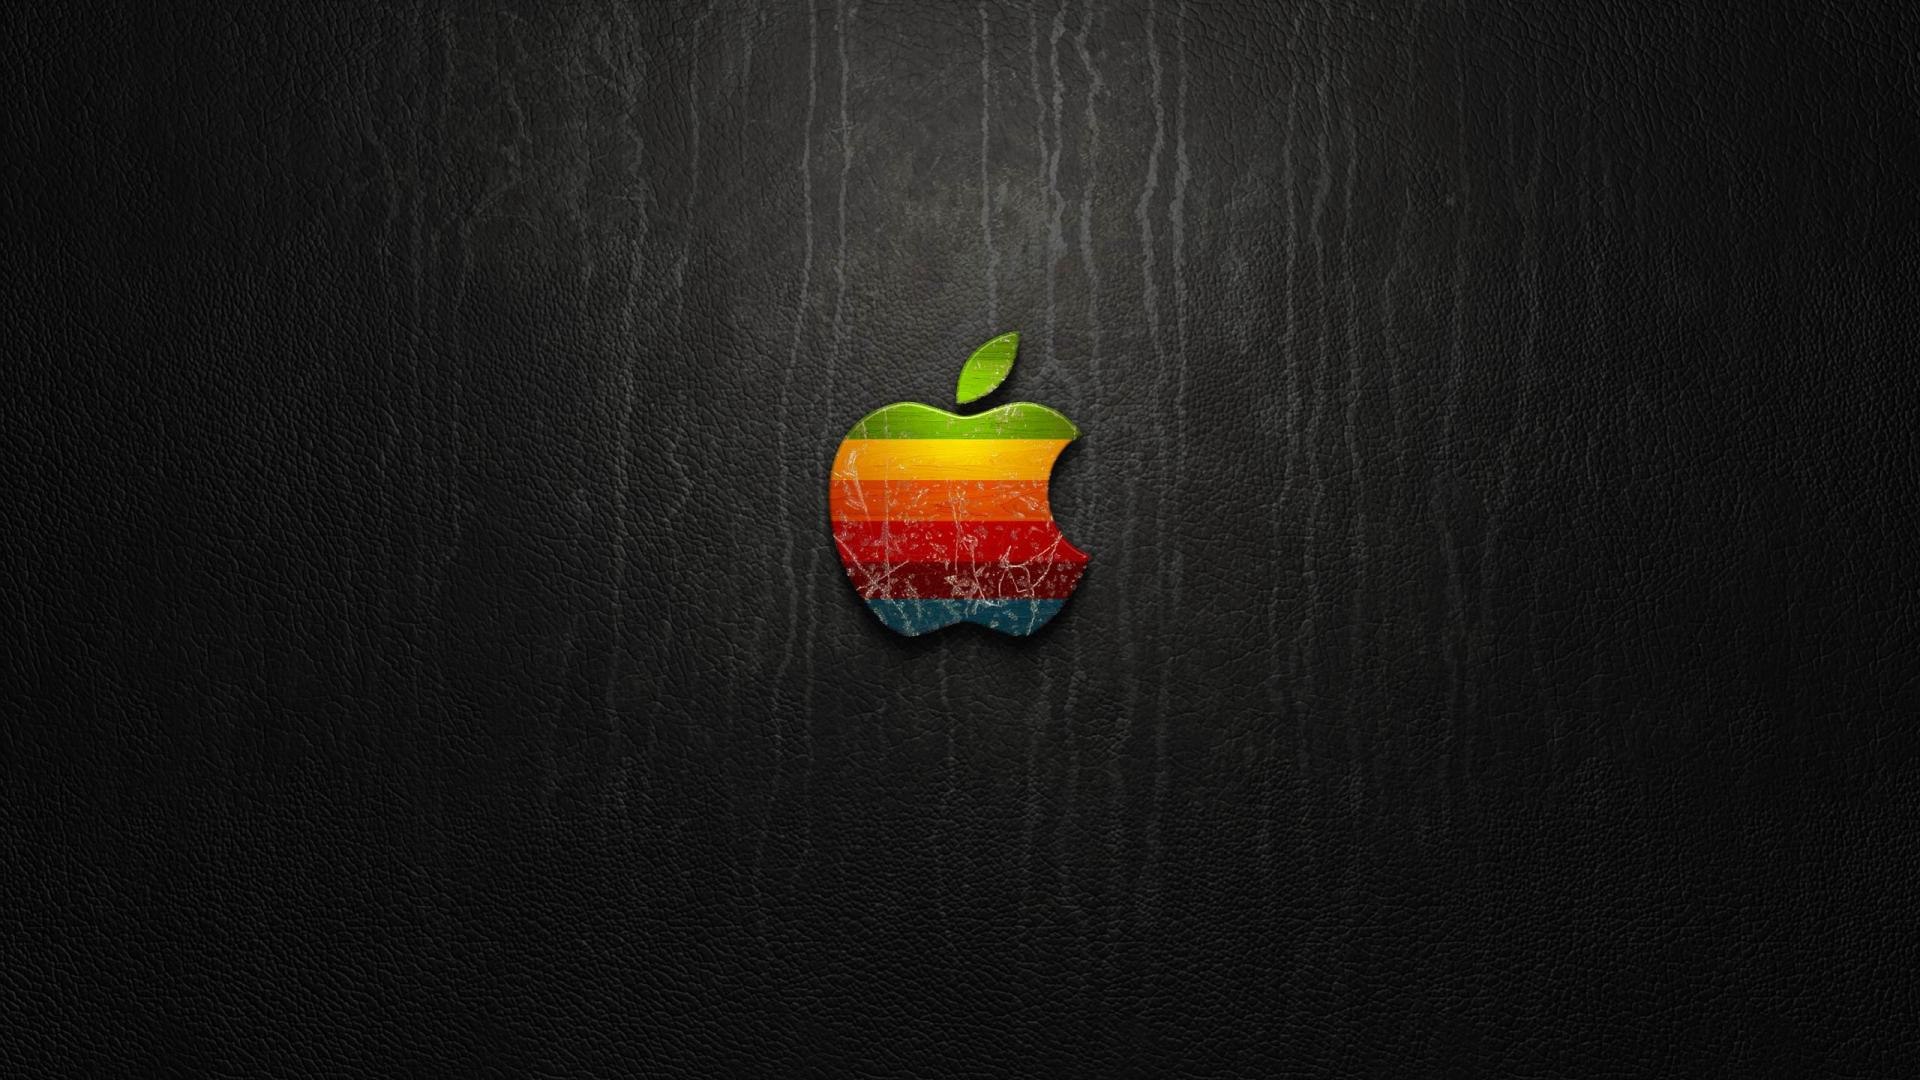 Apple Wallpaper Download For Pc